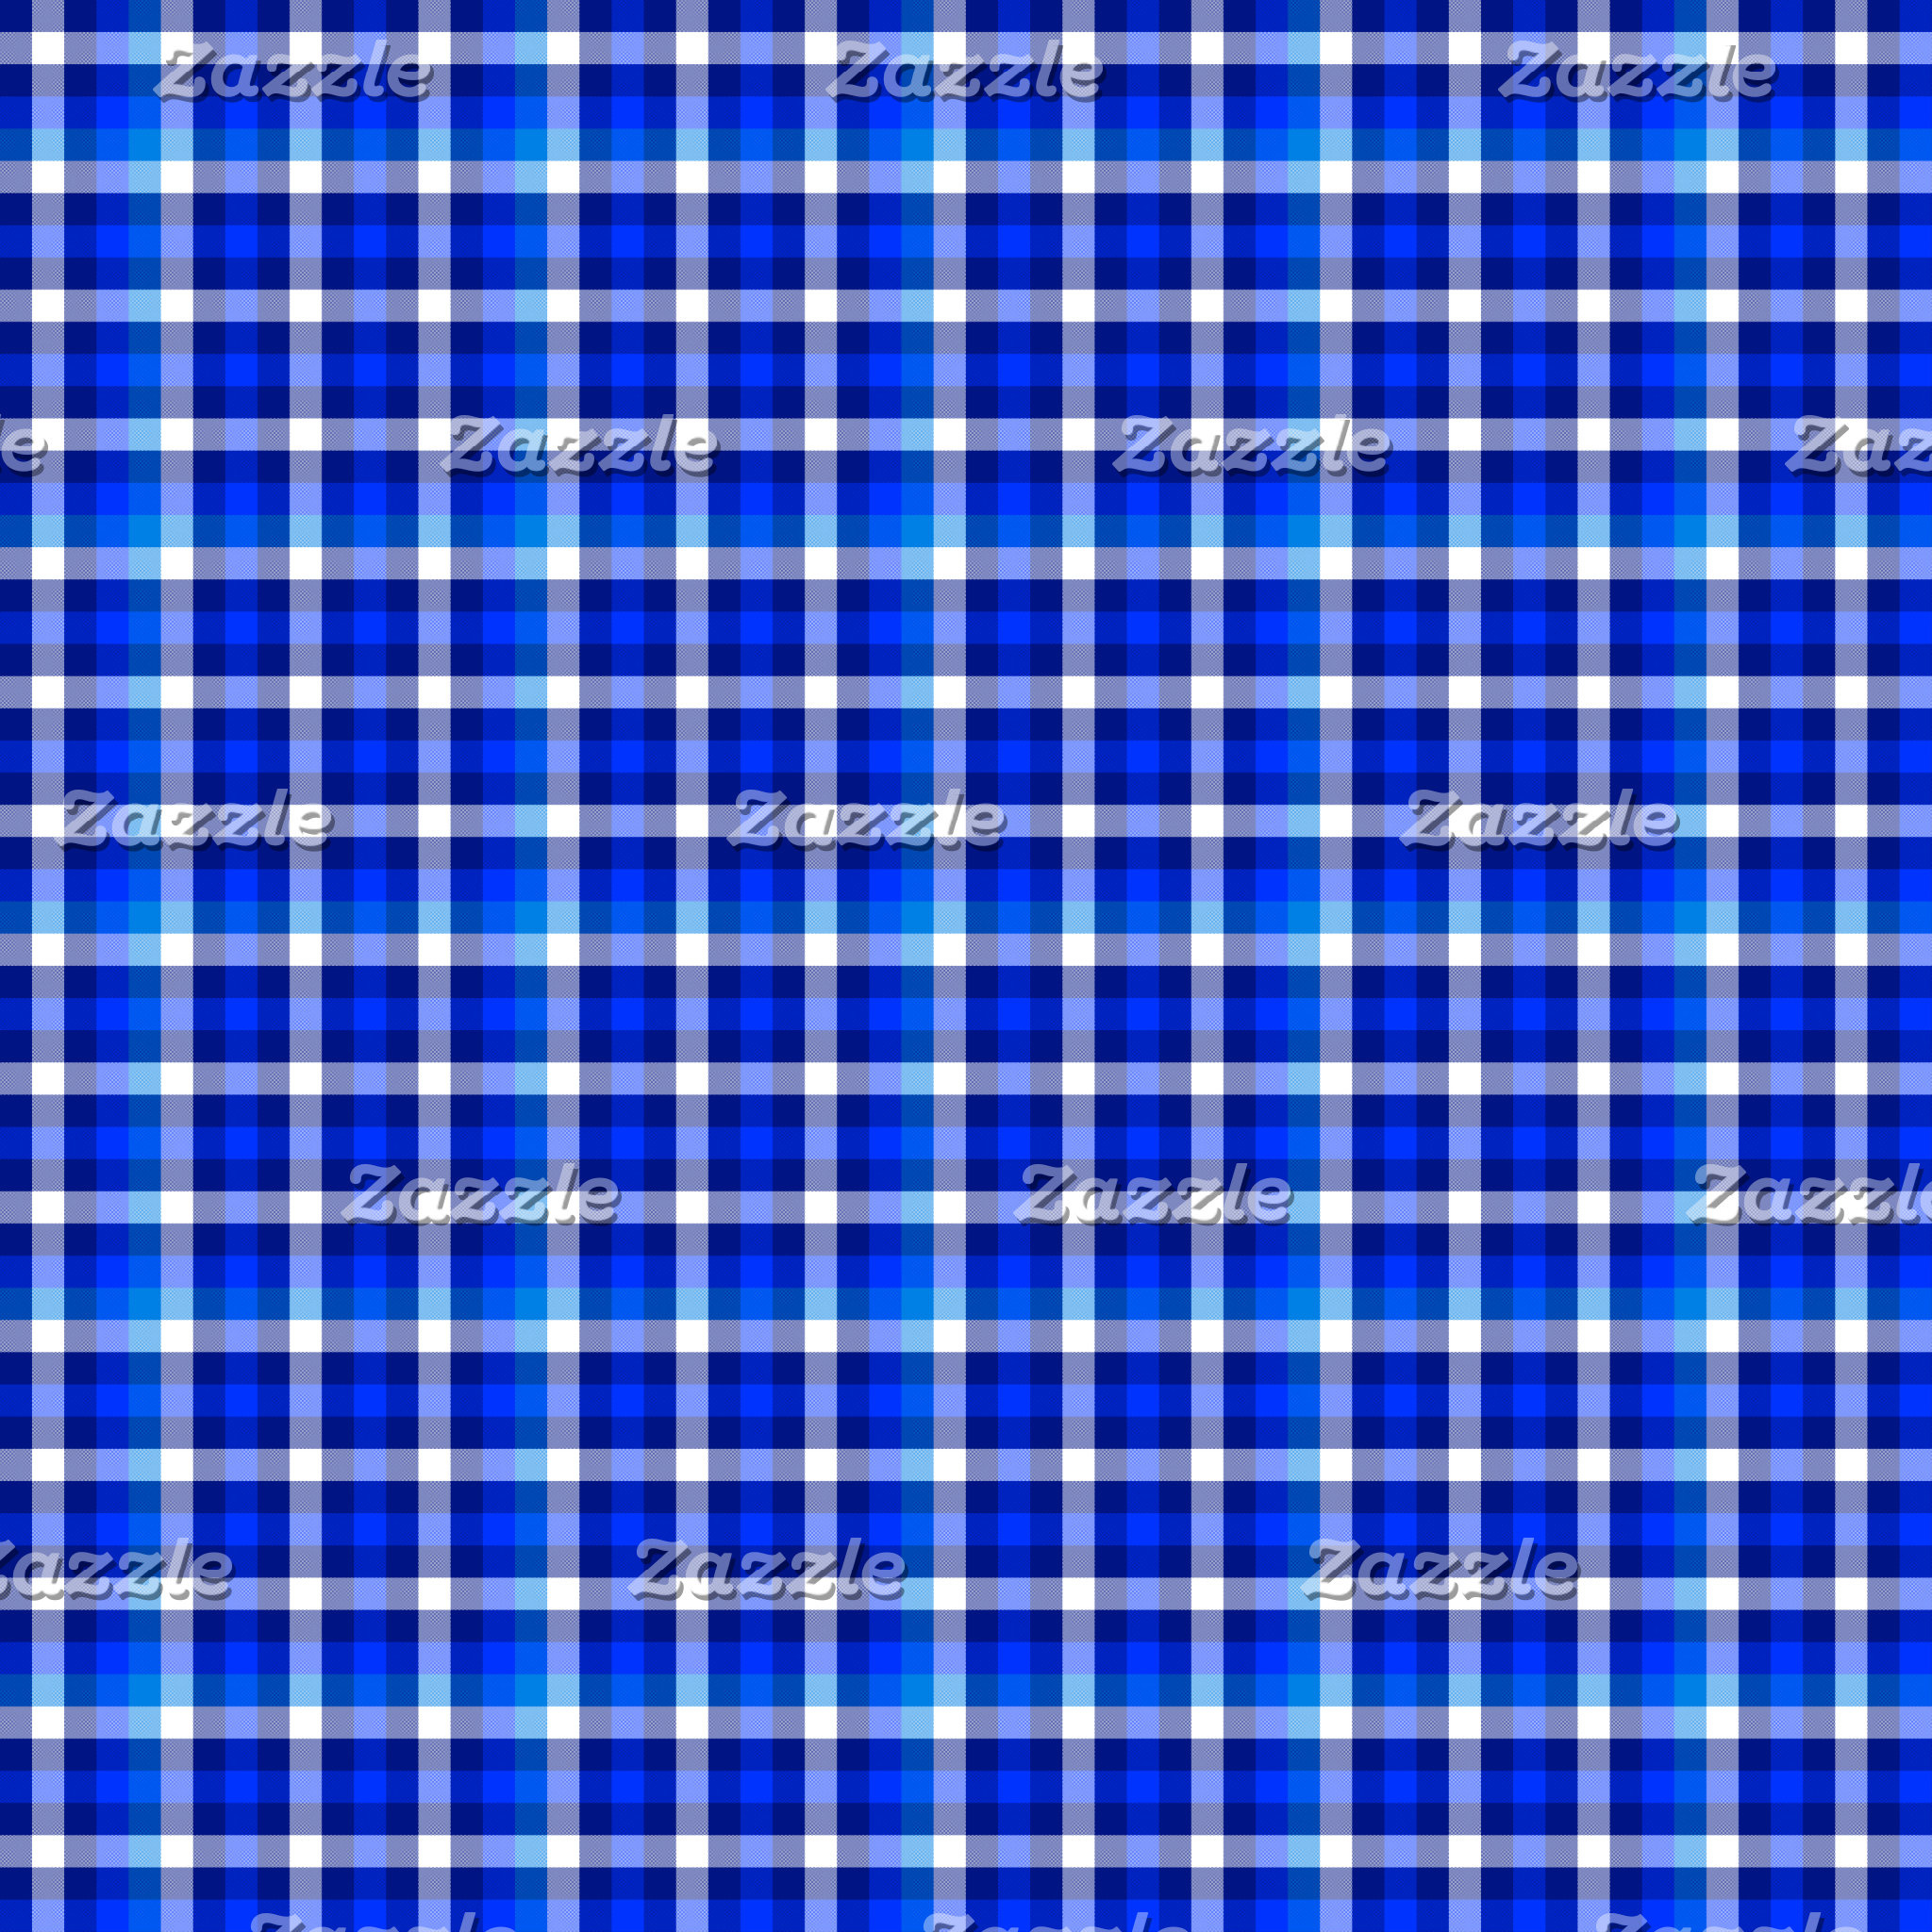 SHADES OF BLUE CHECKED